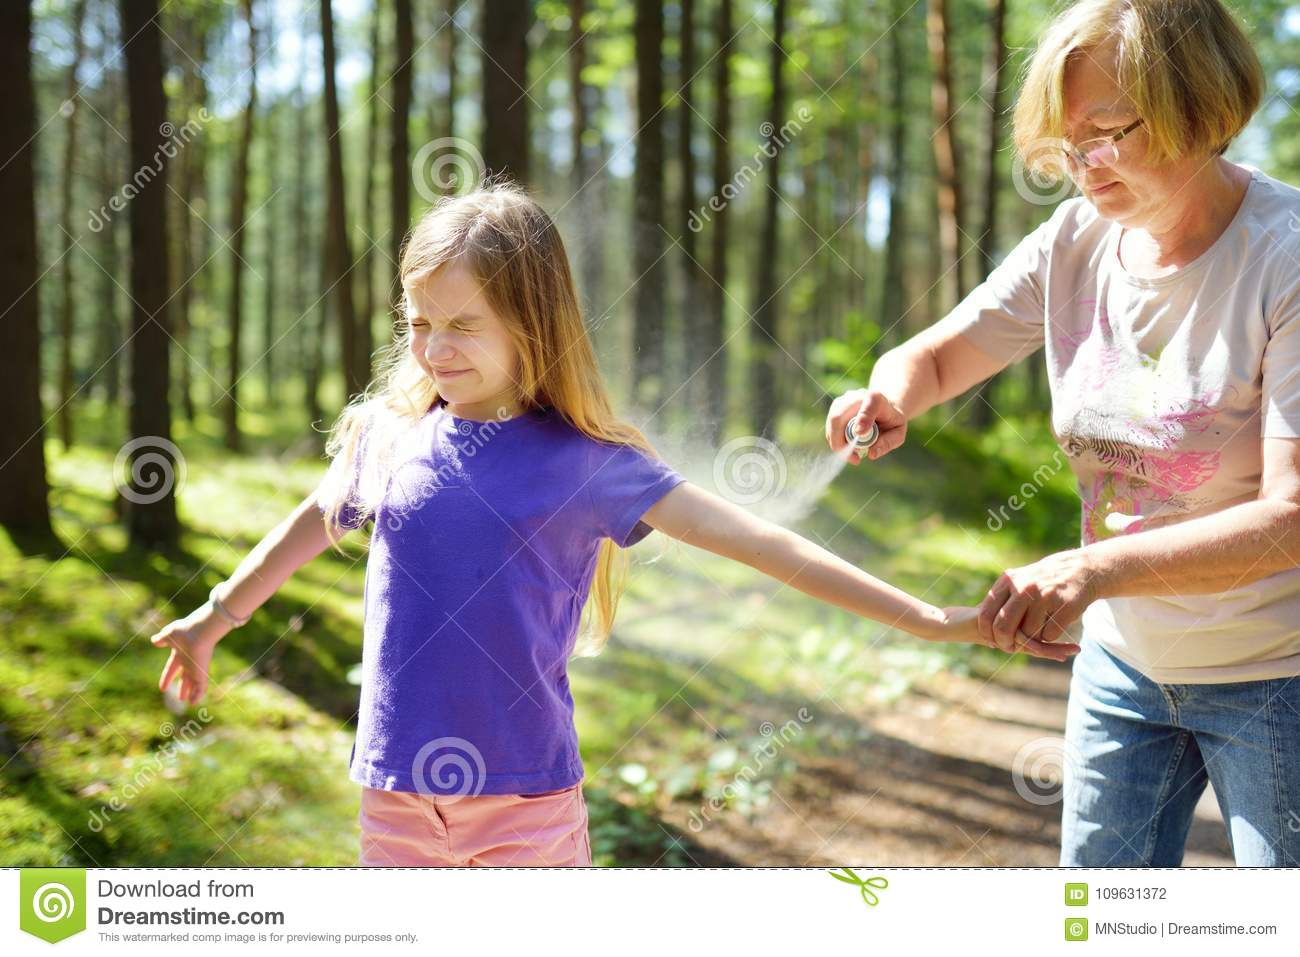 Middle age woman applying insect repellent to her granddaughter before forest hike beautiful summer day. Protecting children from